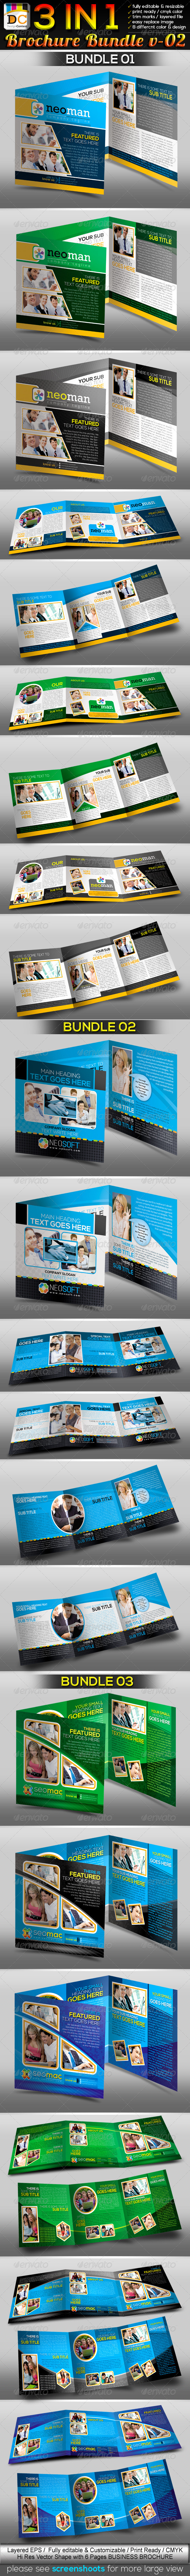 3in1 : Corporate Tri-fold Business Brochure Bundle - Corporate Brochures